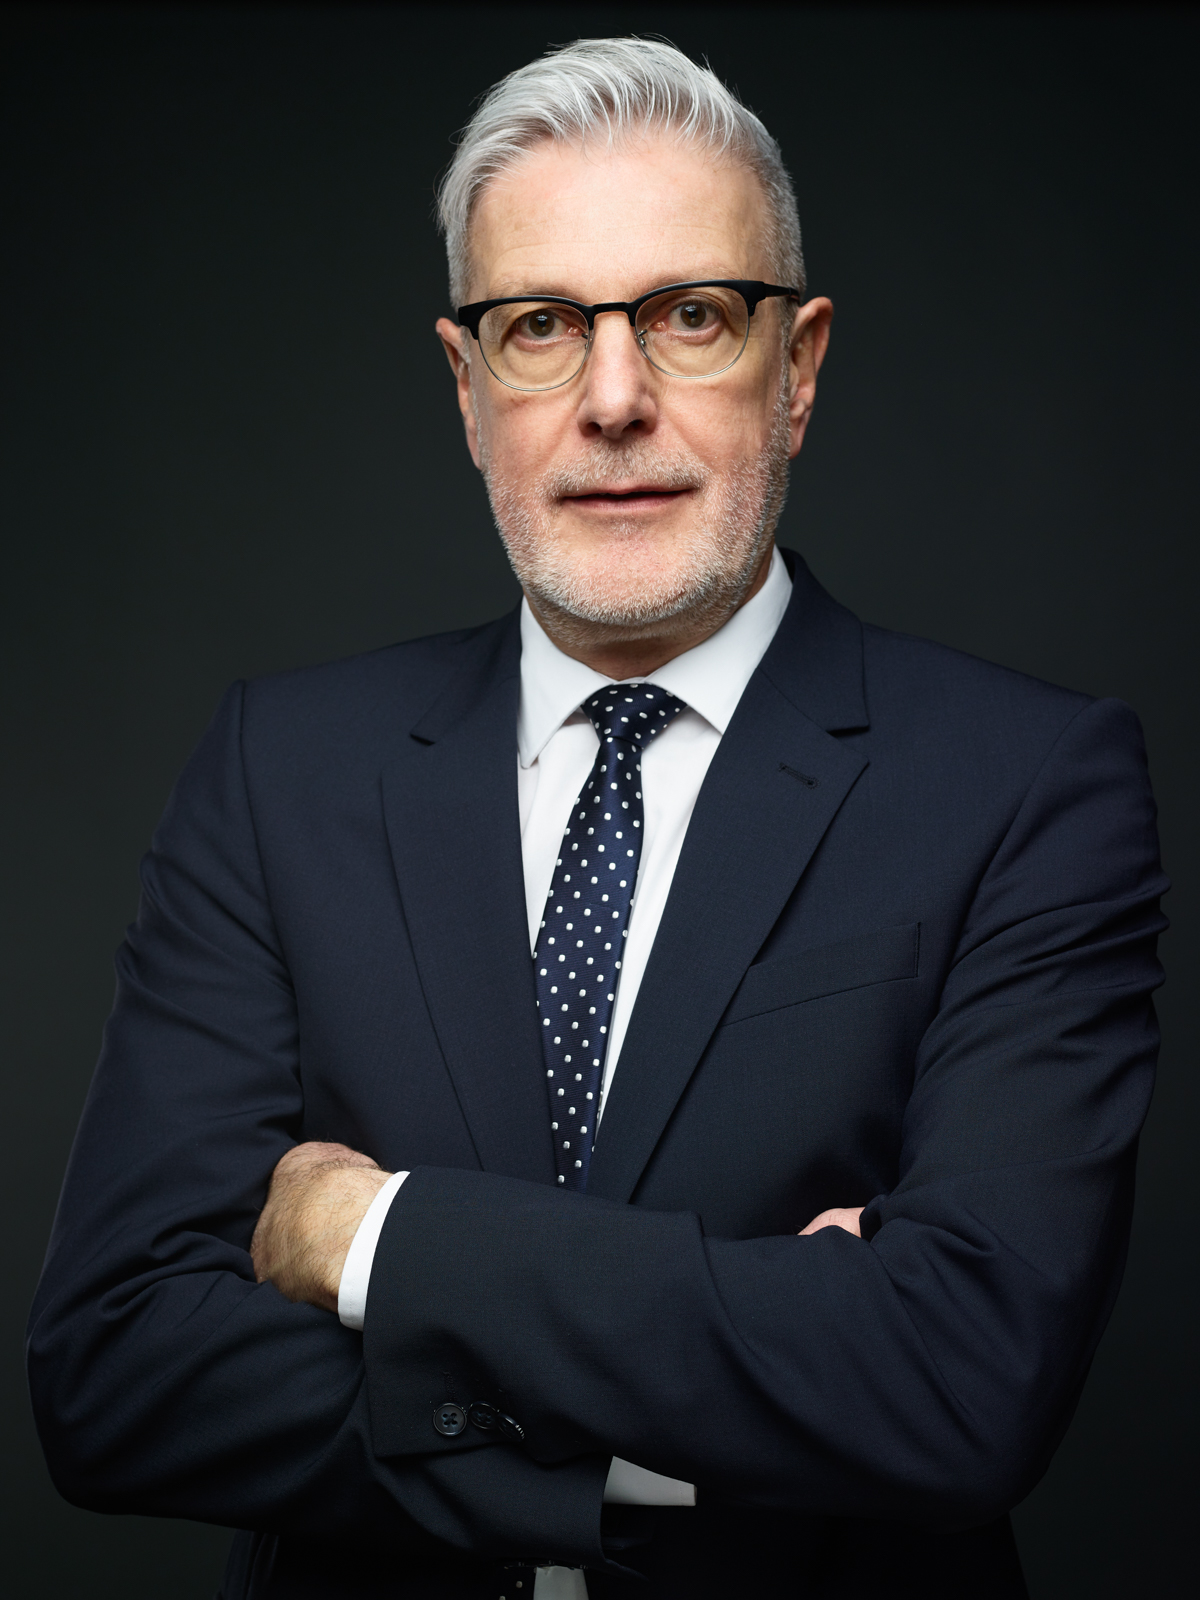 sven-de-almeida-portrait-corporate